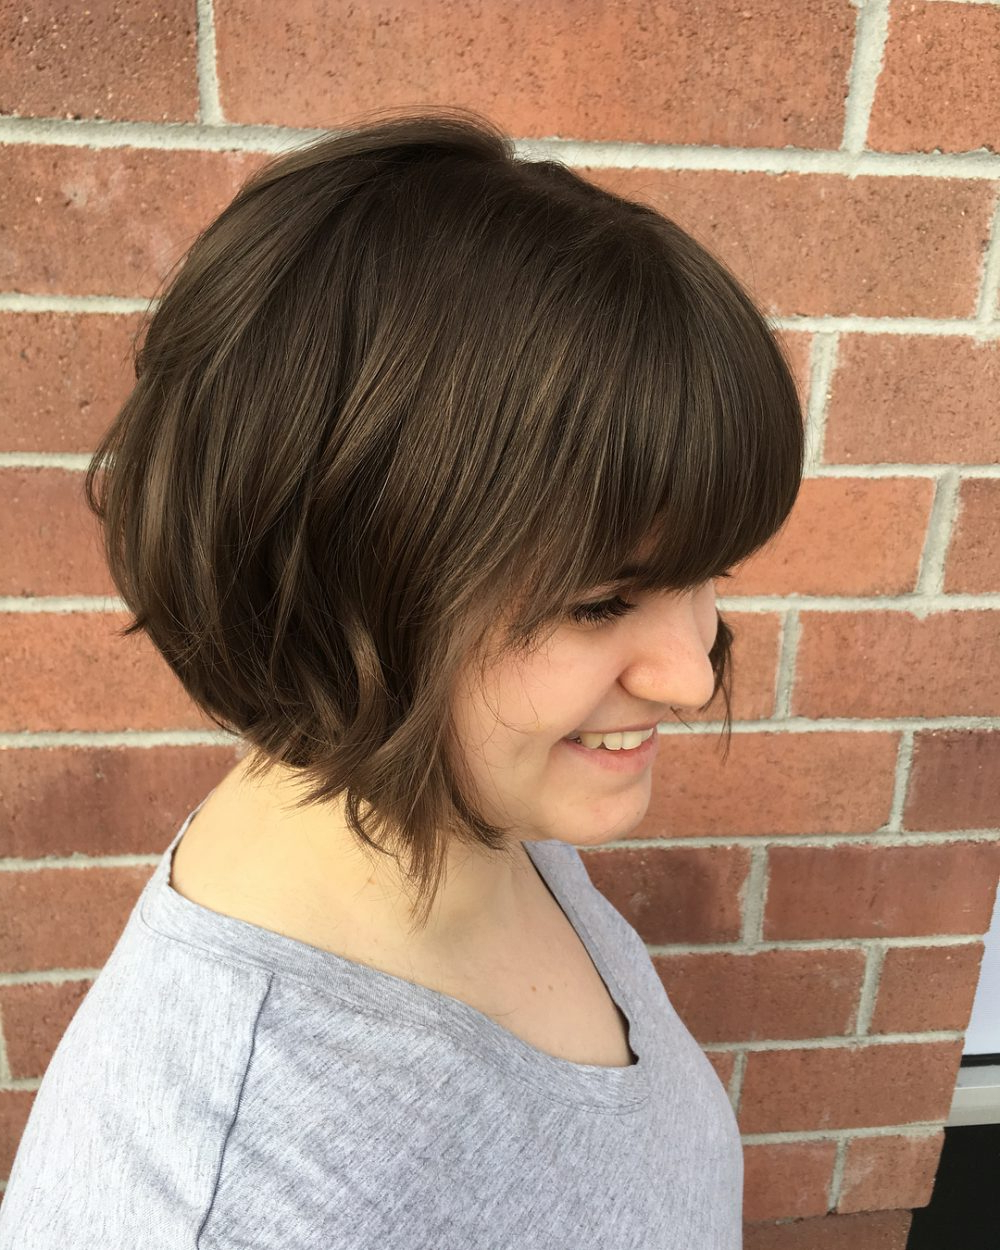 34 Greatest Short Haircuts And Hairstyles For Thick Hair For 2018 With Layered Pixie Hairstyles With An Edgy Fringe (View 9 of 20)